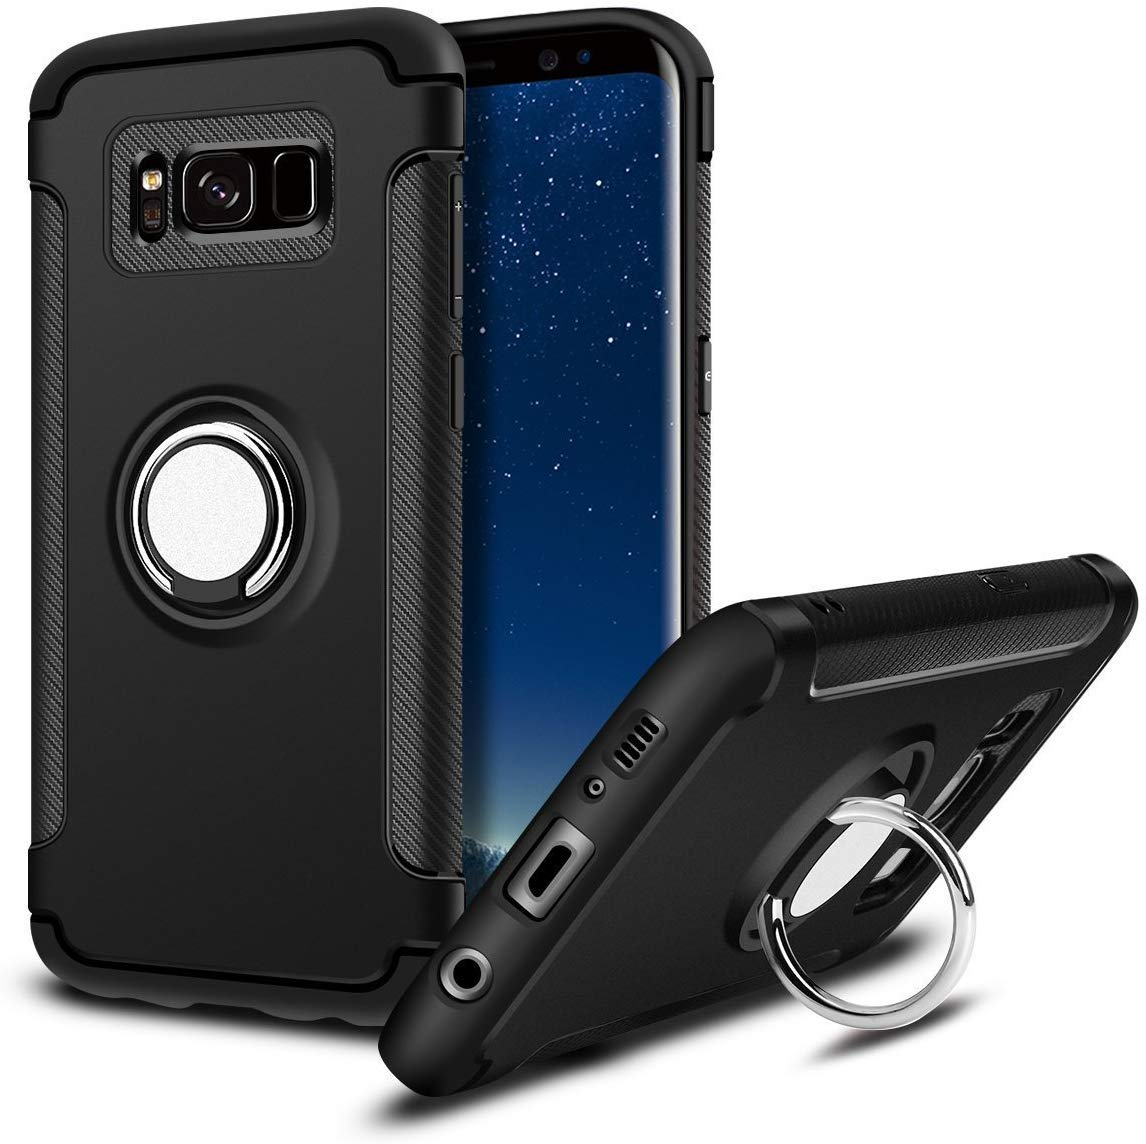 Case for Samsung Galaxy S8 Plus (6.2 inch) Shockproof with Kickstand Protective Bumper Cover (Black) by Niuta..